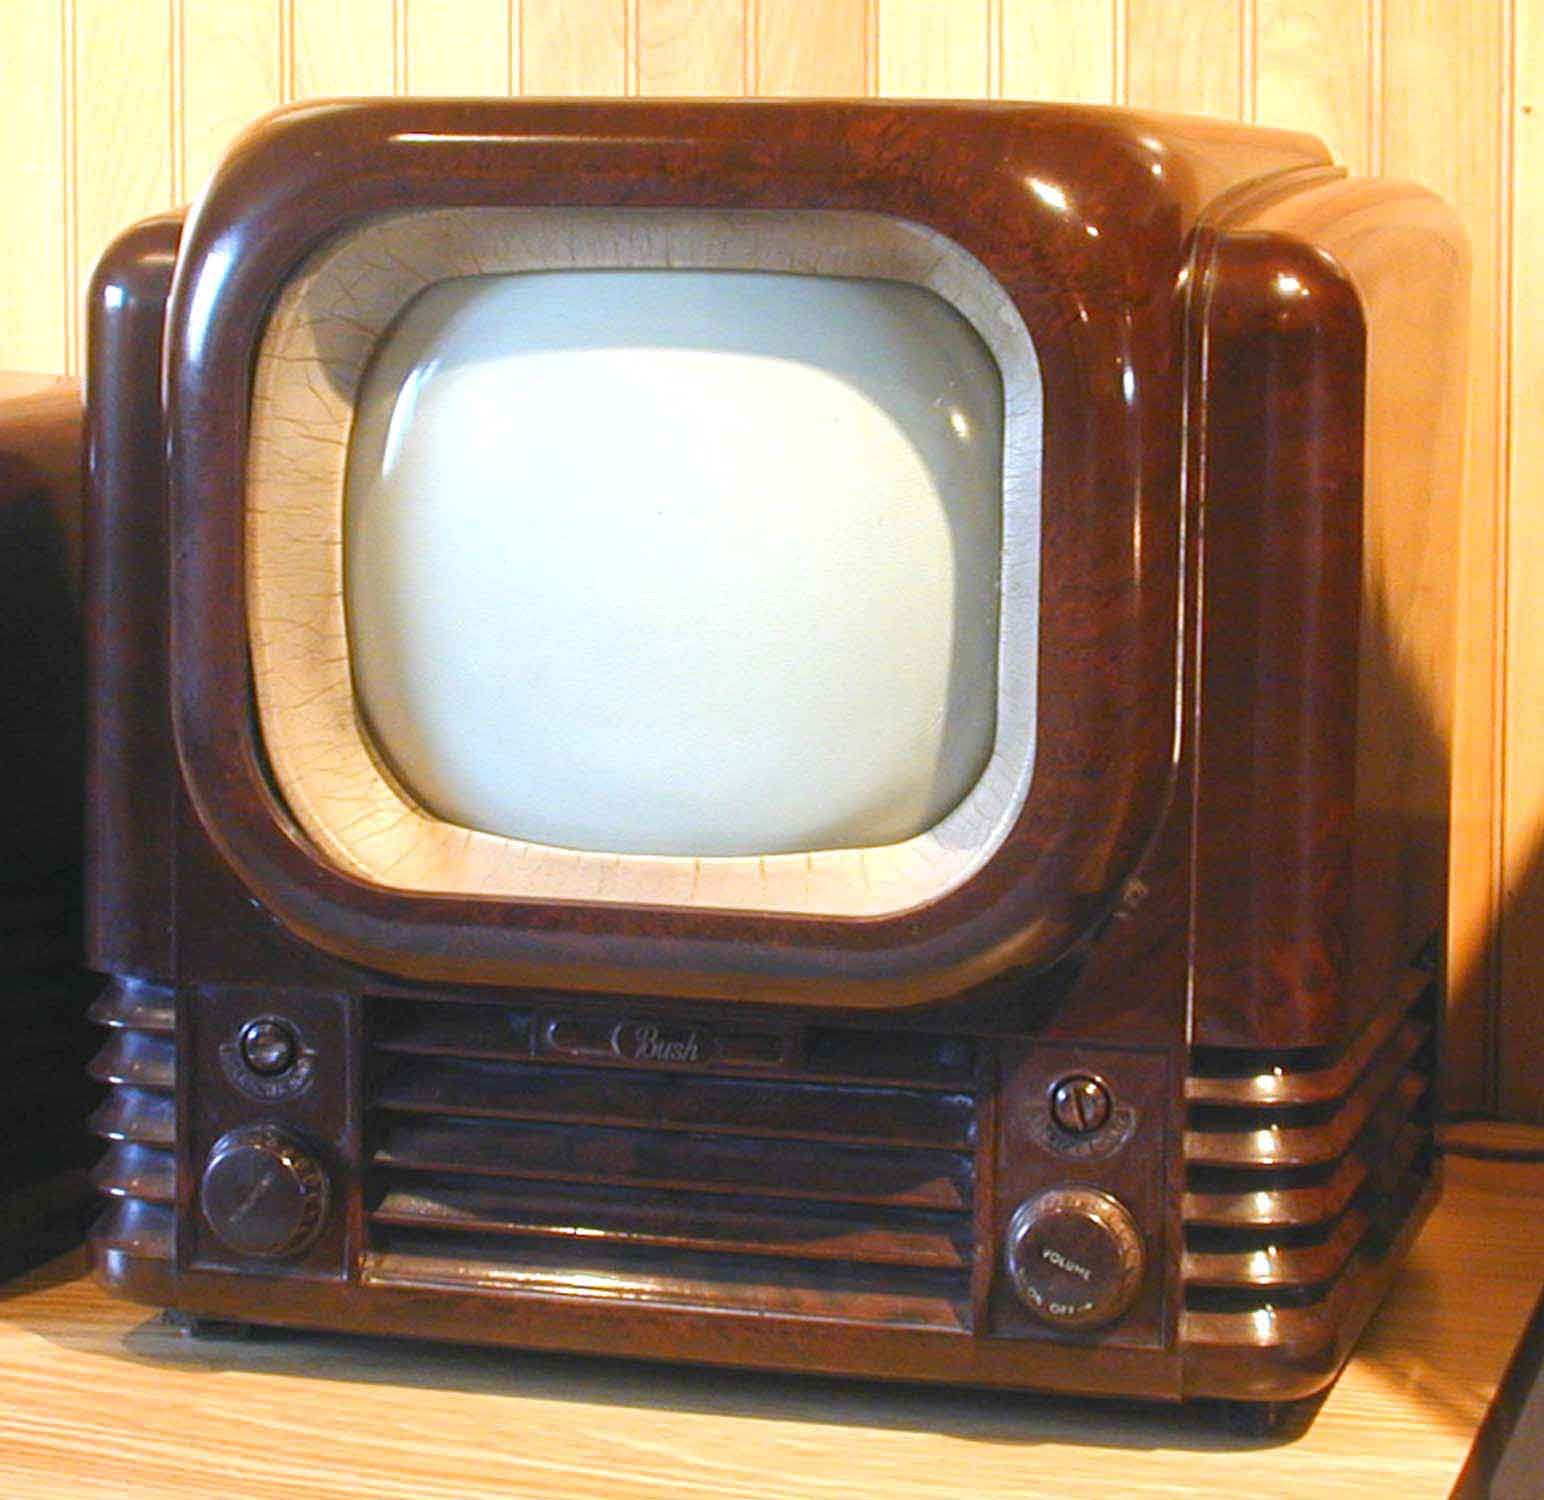 1950 59 GE likewise Original Philco Predicta 1950s Swivel further 381009512388 as well PhilcoPT 33 main as well Id F 1064586. on philco bakelite radio